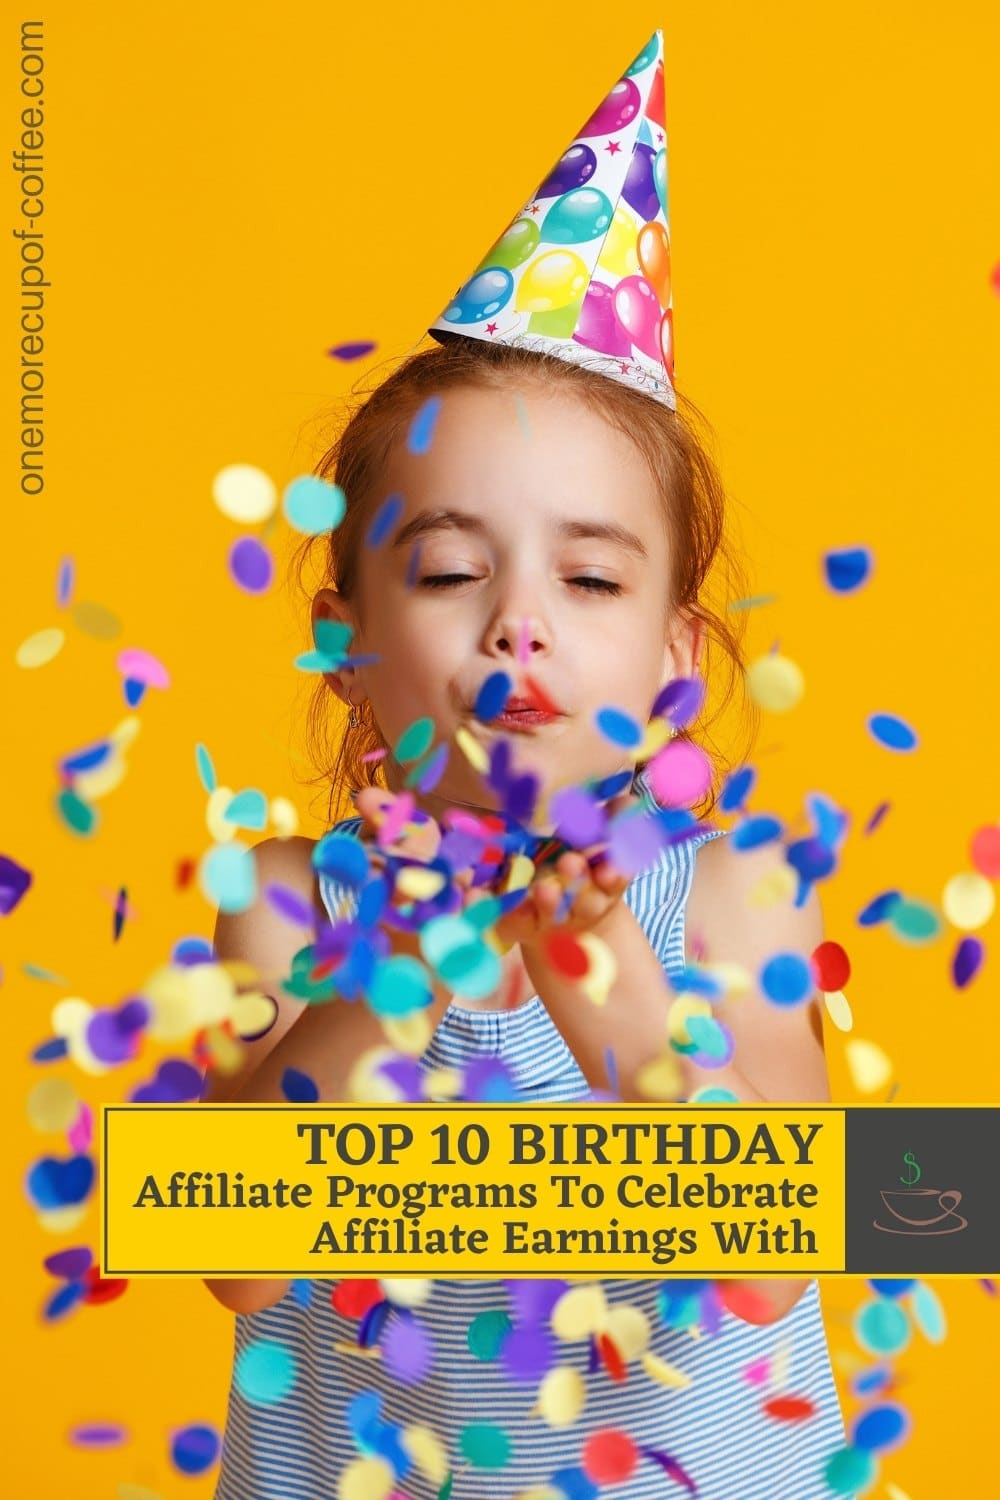 """little girl with a party hat blowing confetti on her two hands against a yellow background; with text overlay """"Top 10 Birthday Affiliate Programs To Celebrate Affiliate Earnings With"""""""